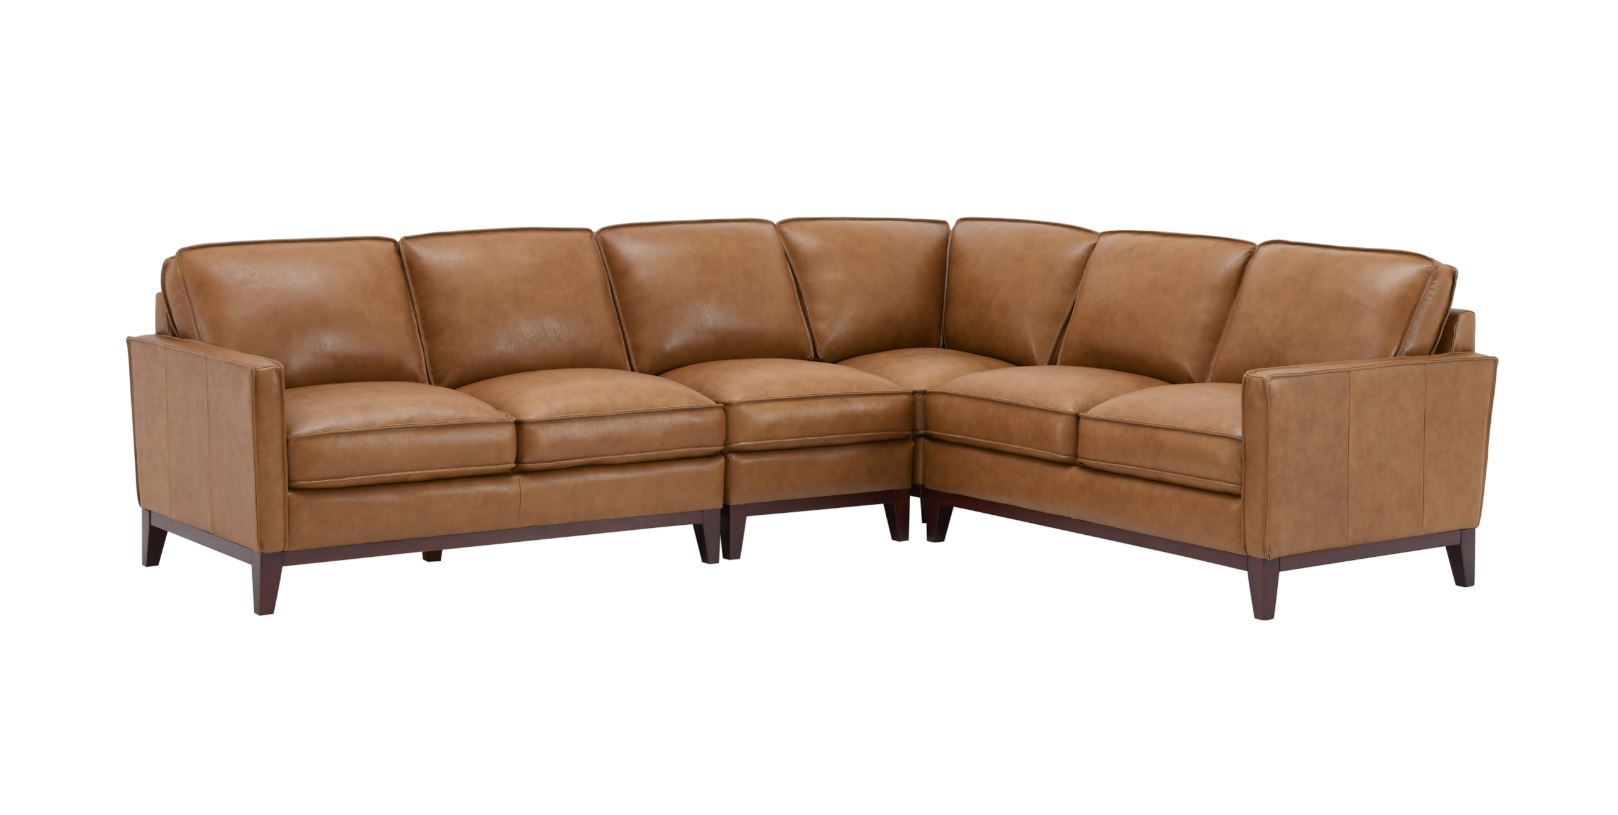 Newport Sectional Image